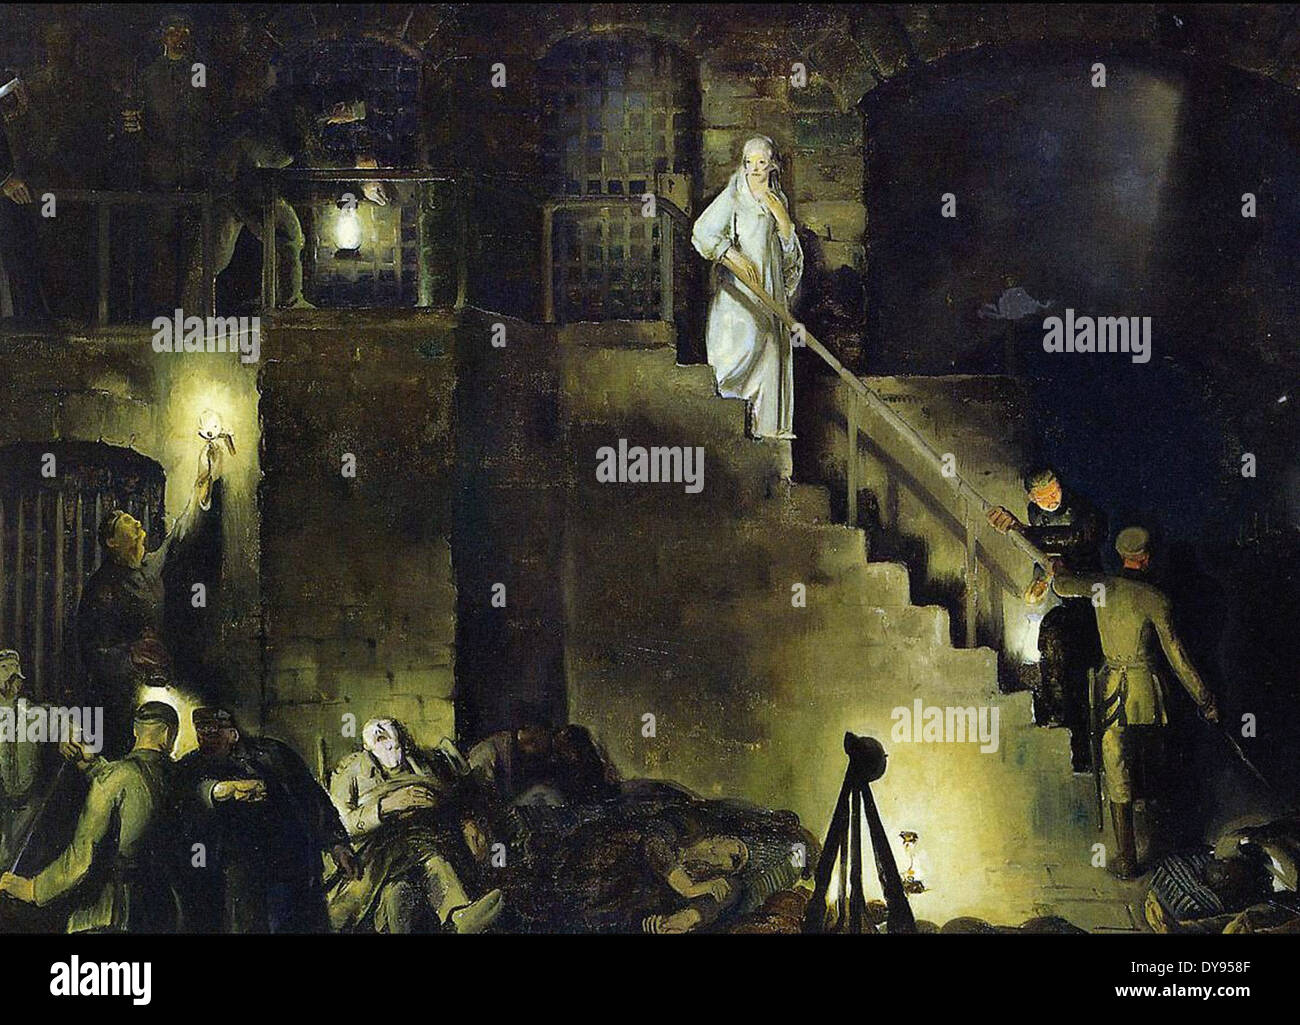 George Wesley Bellows Edith Cavell - Stock Image